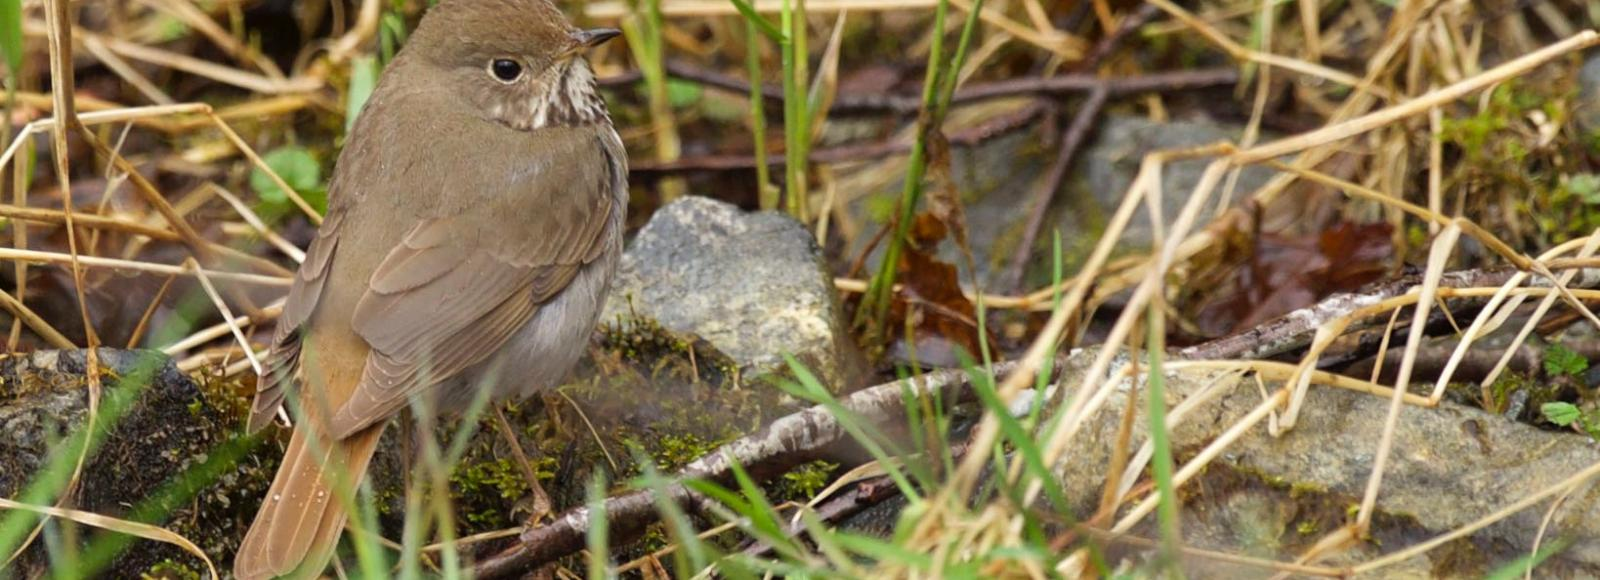 tiny brown bird in long green grasses